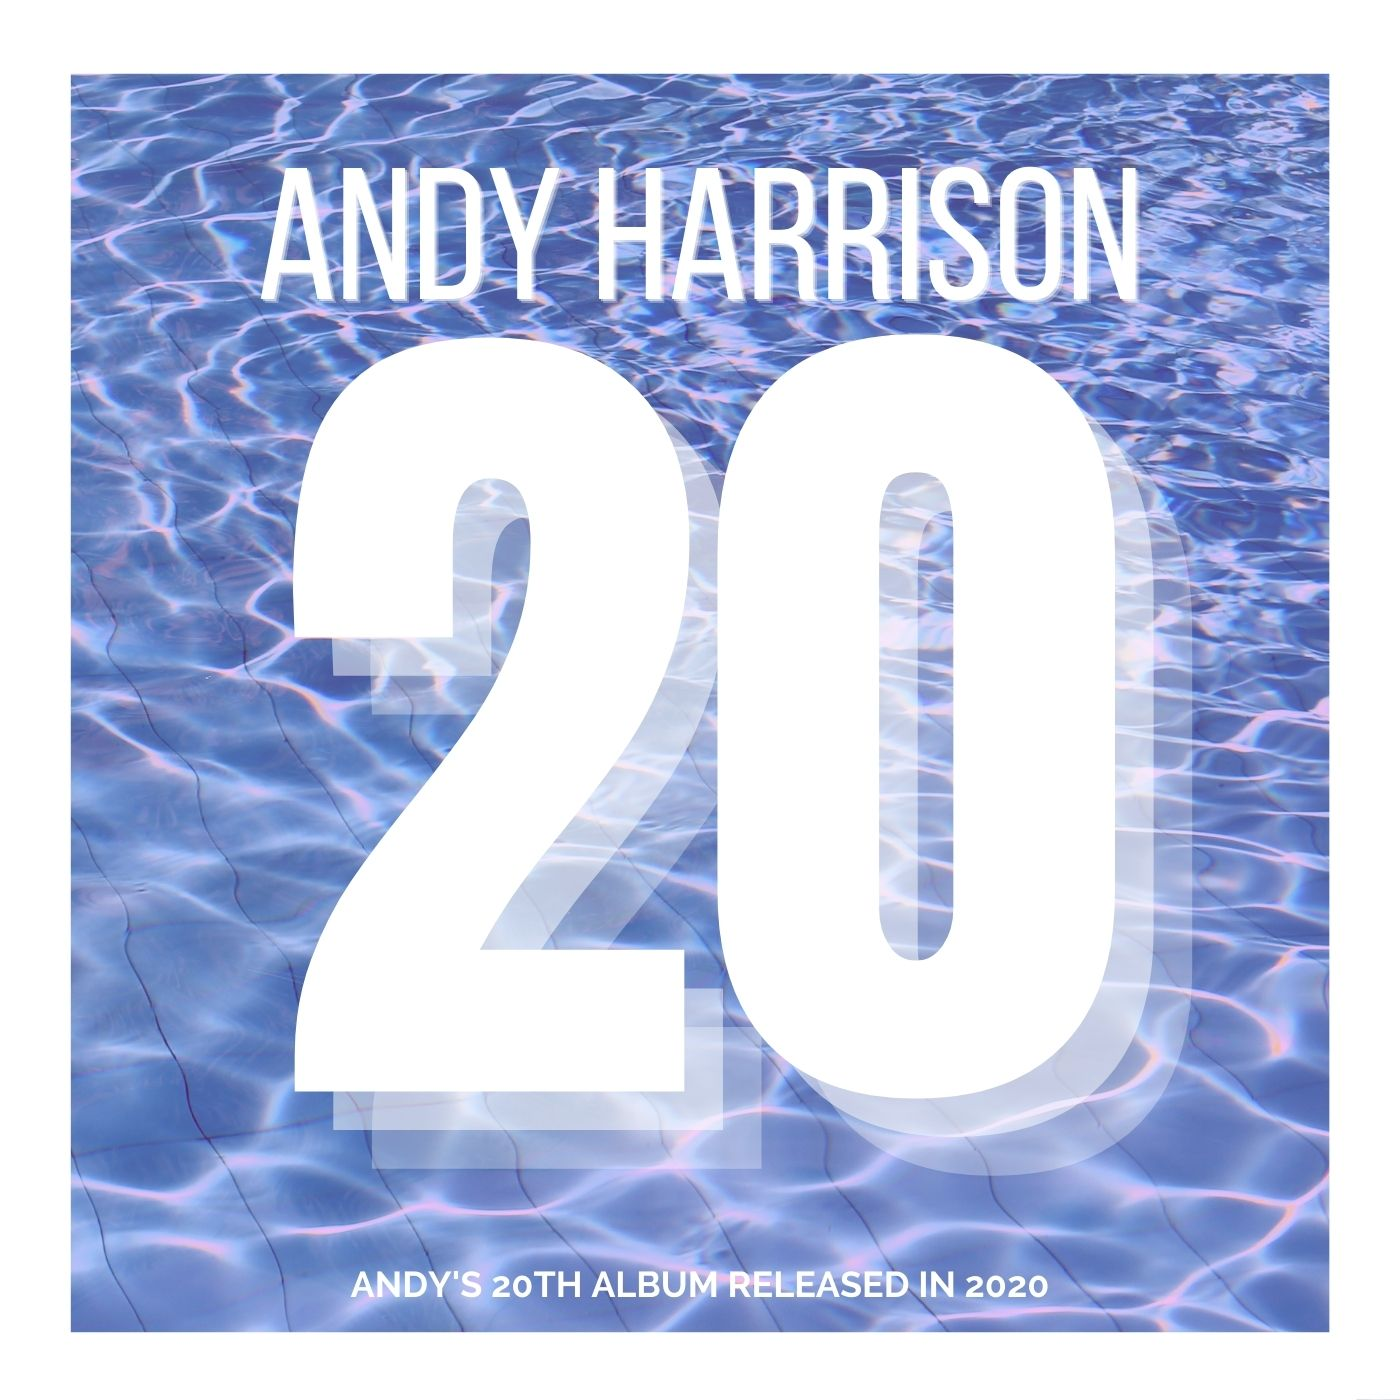 Andy Harrison 20 Album Cover (1)